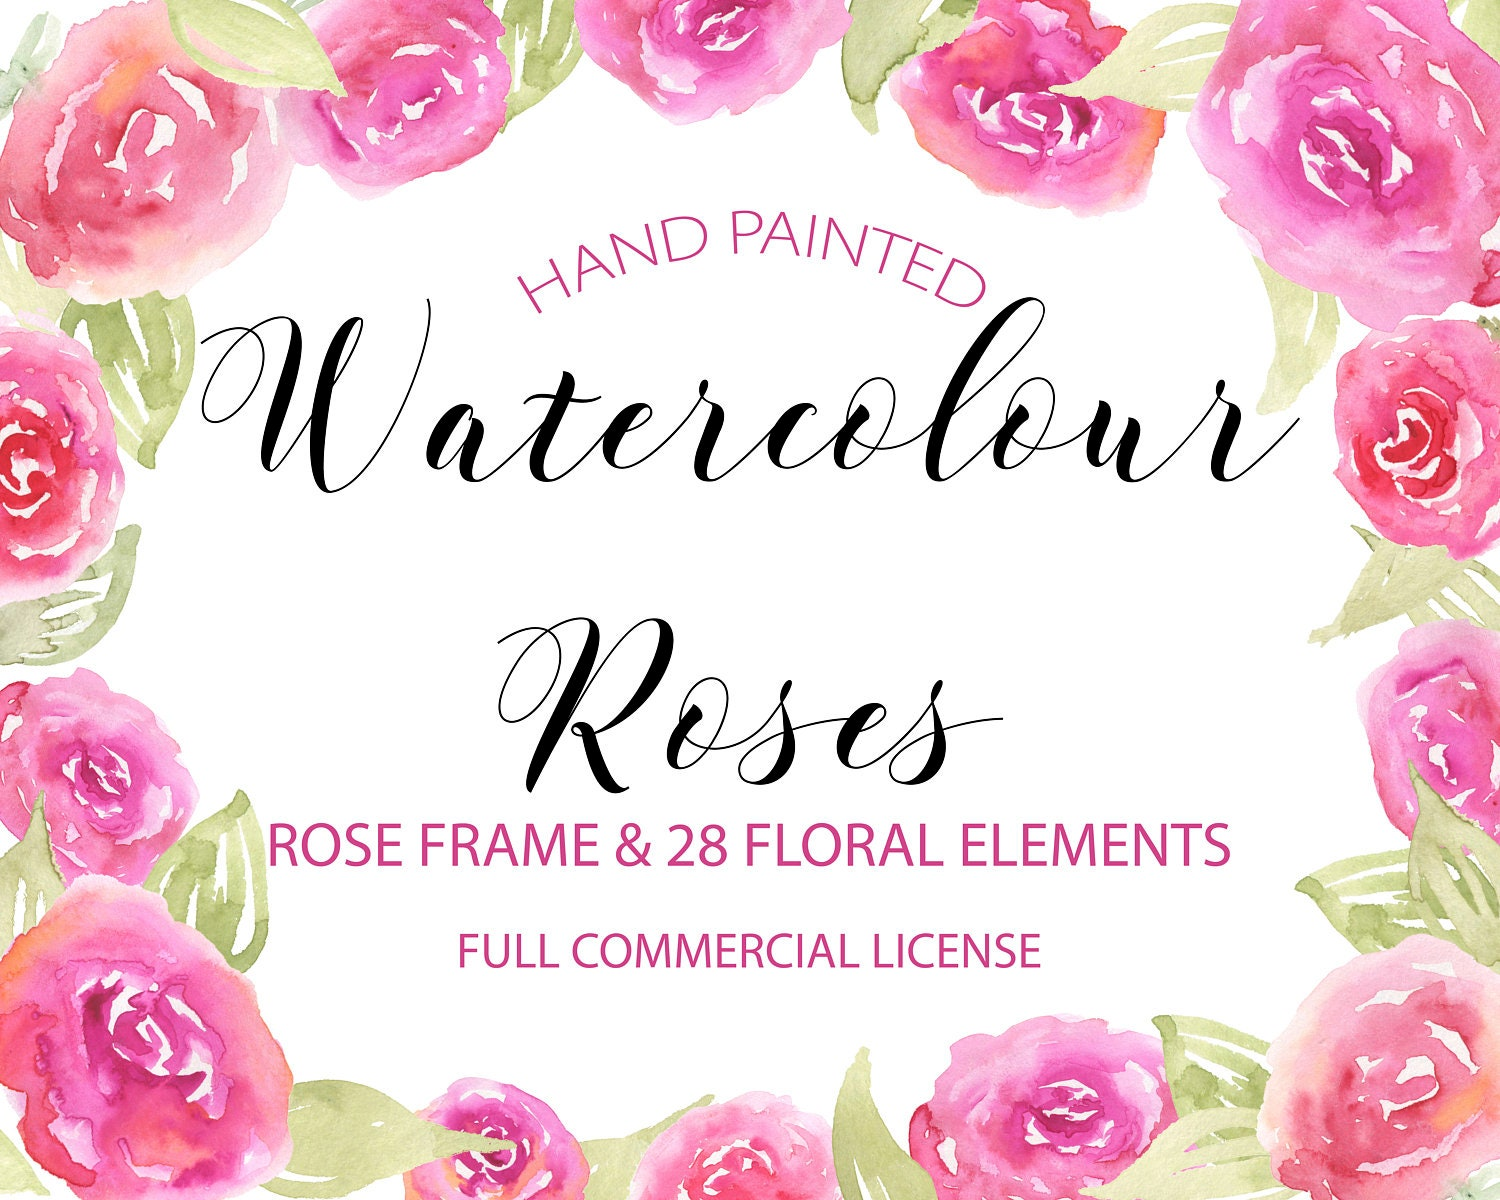 Watercolor Rose Clipart Pink Rose Clipart Floral Frame | Etsy